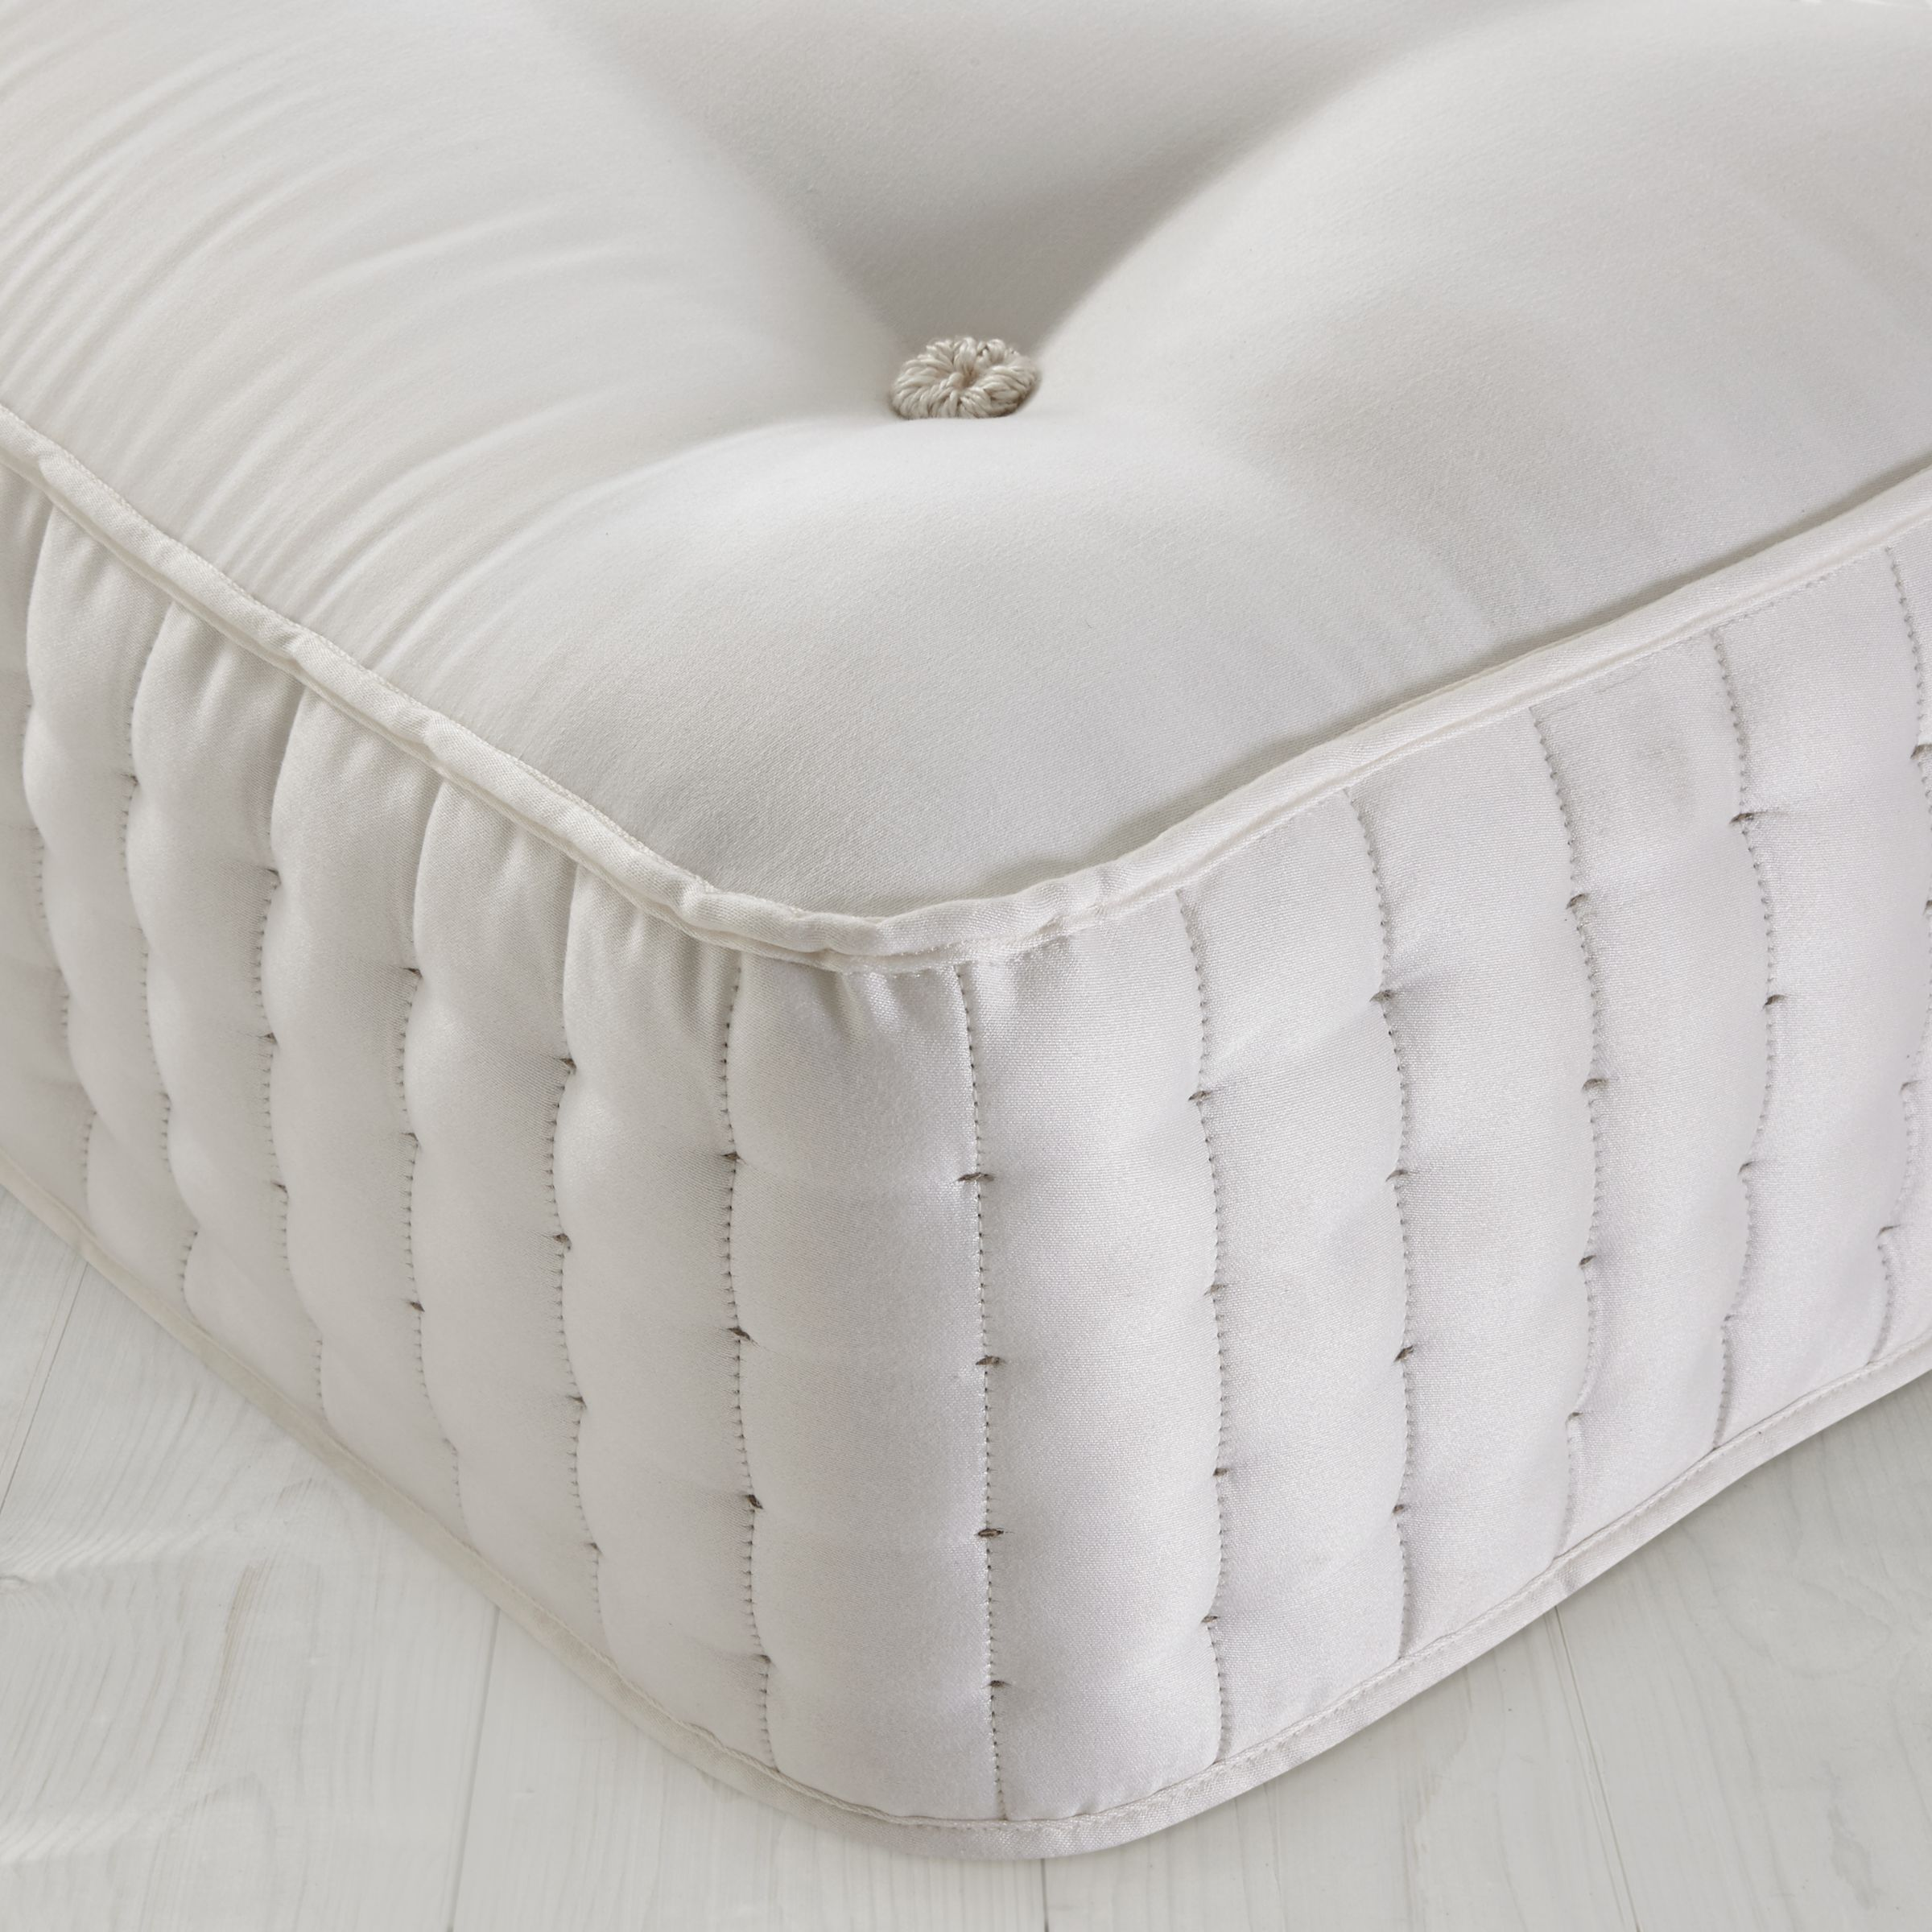 Vi-Spring Cliveden Mattress, Double